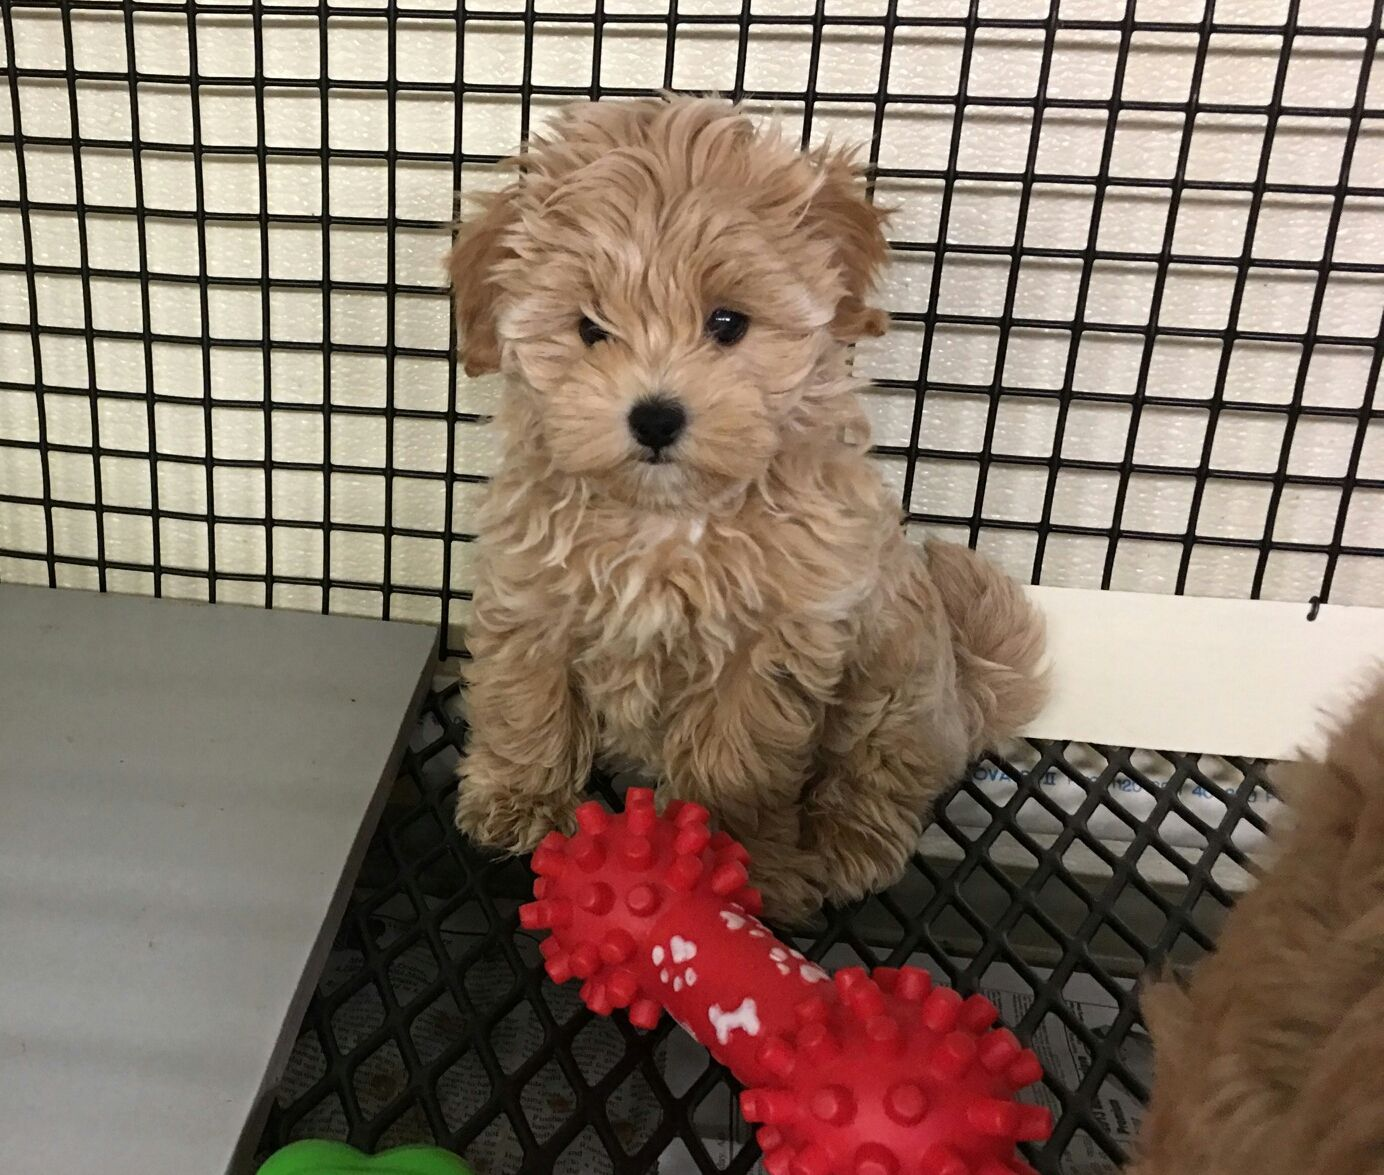 Designer And Mix Puppies Morkies Maltipoos Red Maltipoos Yorkshire Terrier Shih Tzu Havanese Toy And Teacup Poodles French Yorkie Poo Shih Poo Puppies